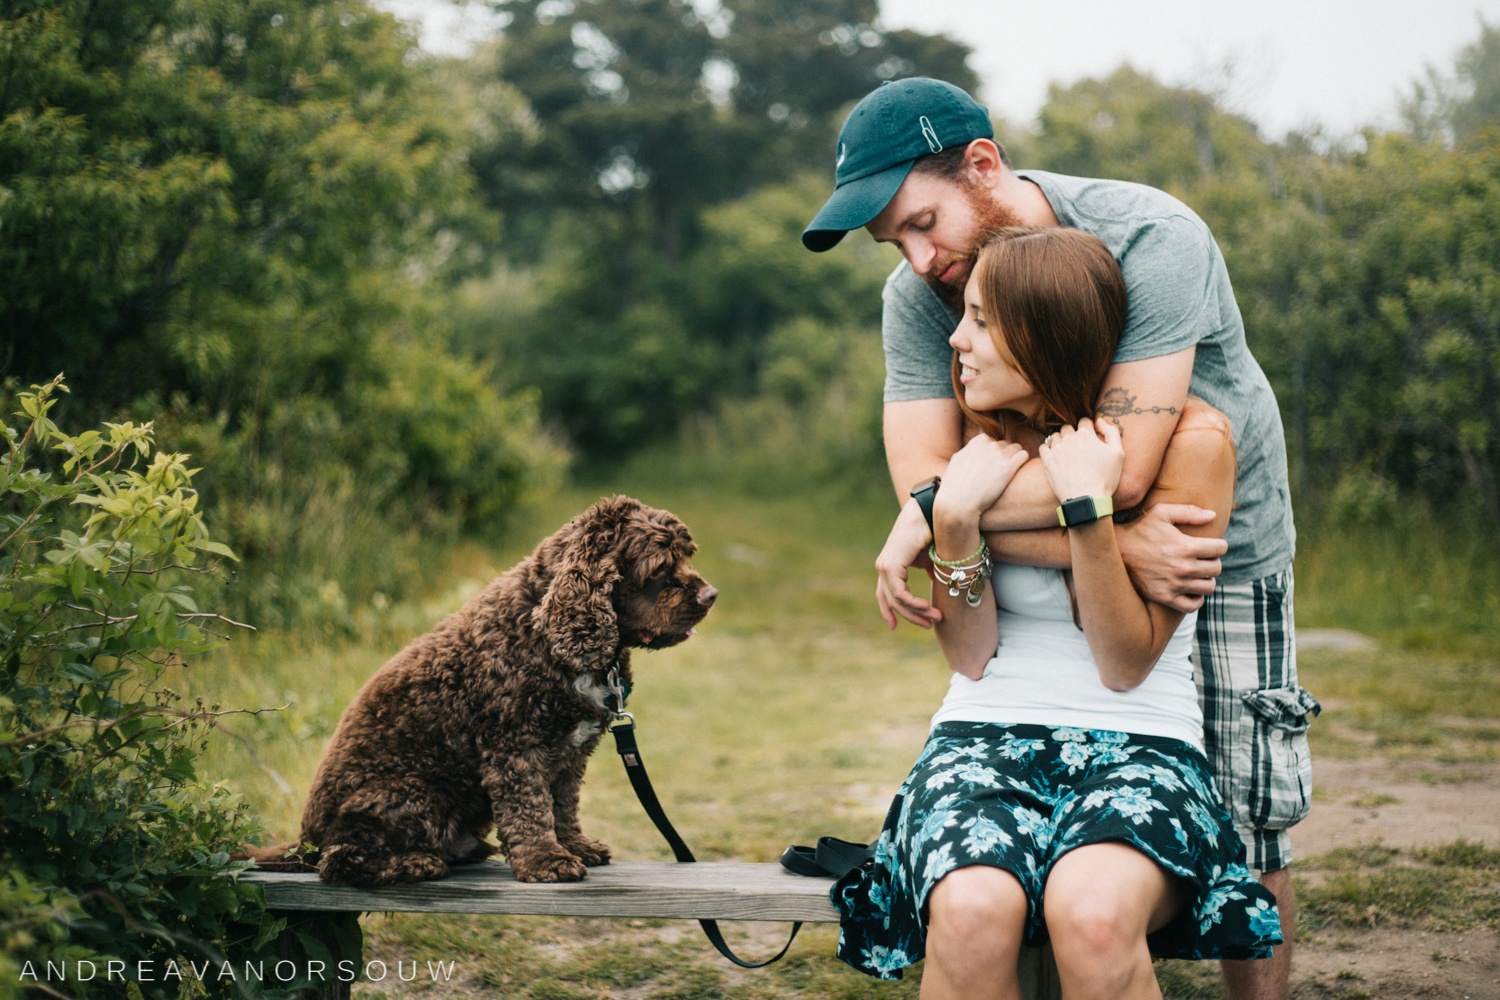 jamestown_rhode_island_Ri_engagement_session_photoshoot_wedding_outdoors_connecticut_wedding_new_england_photographer_dog_puppy.jpg